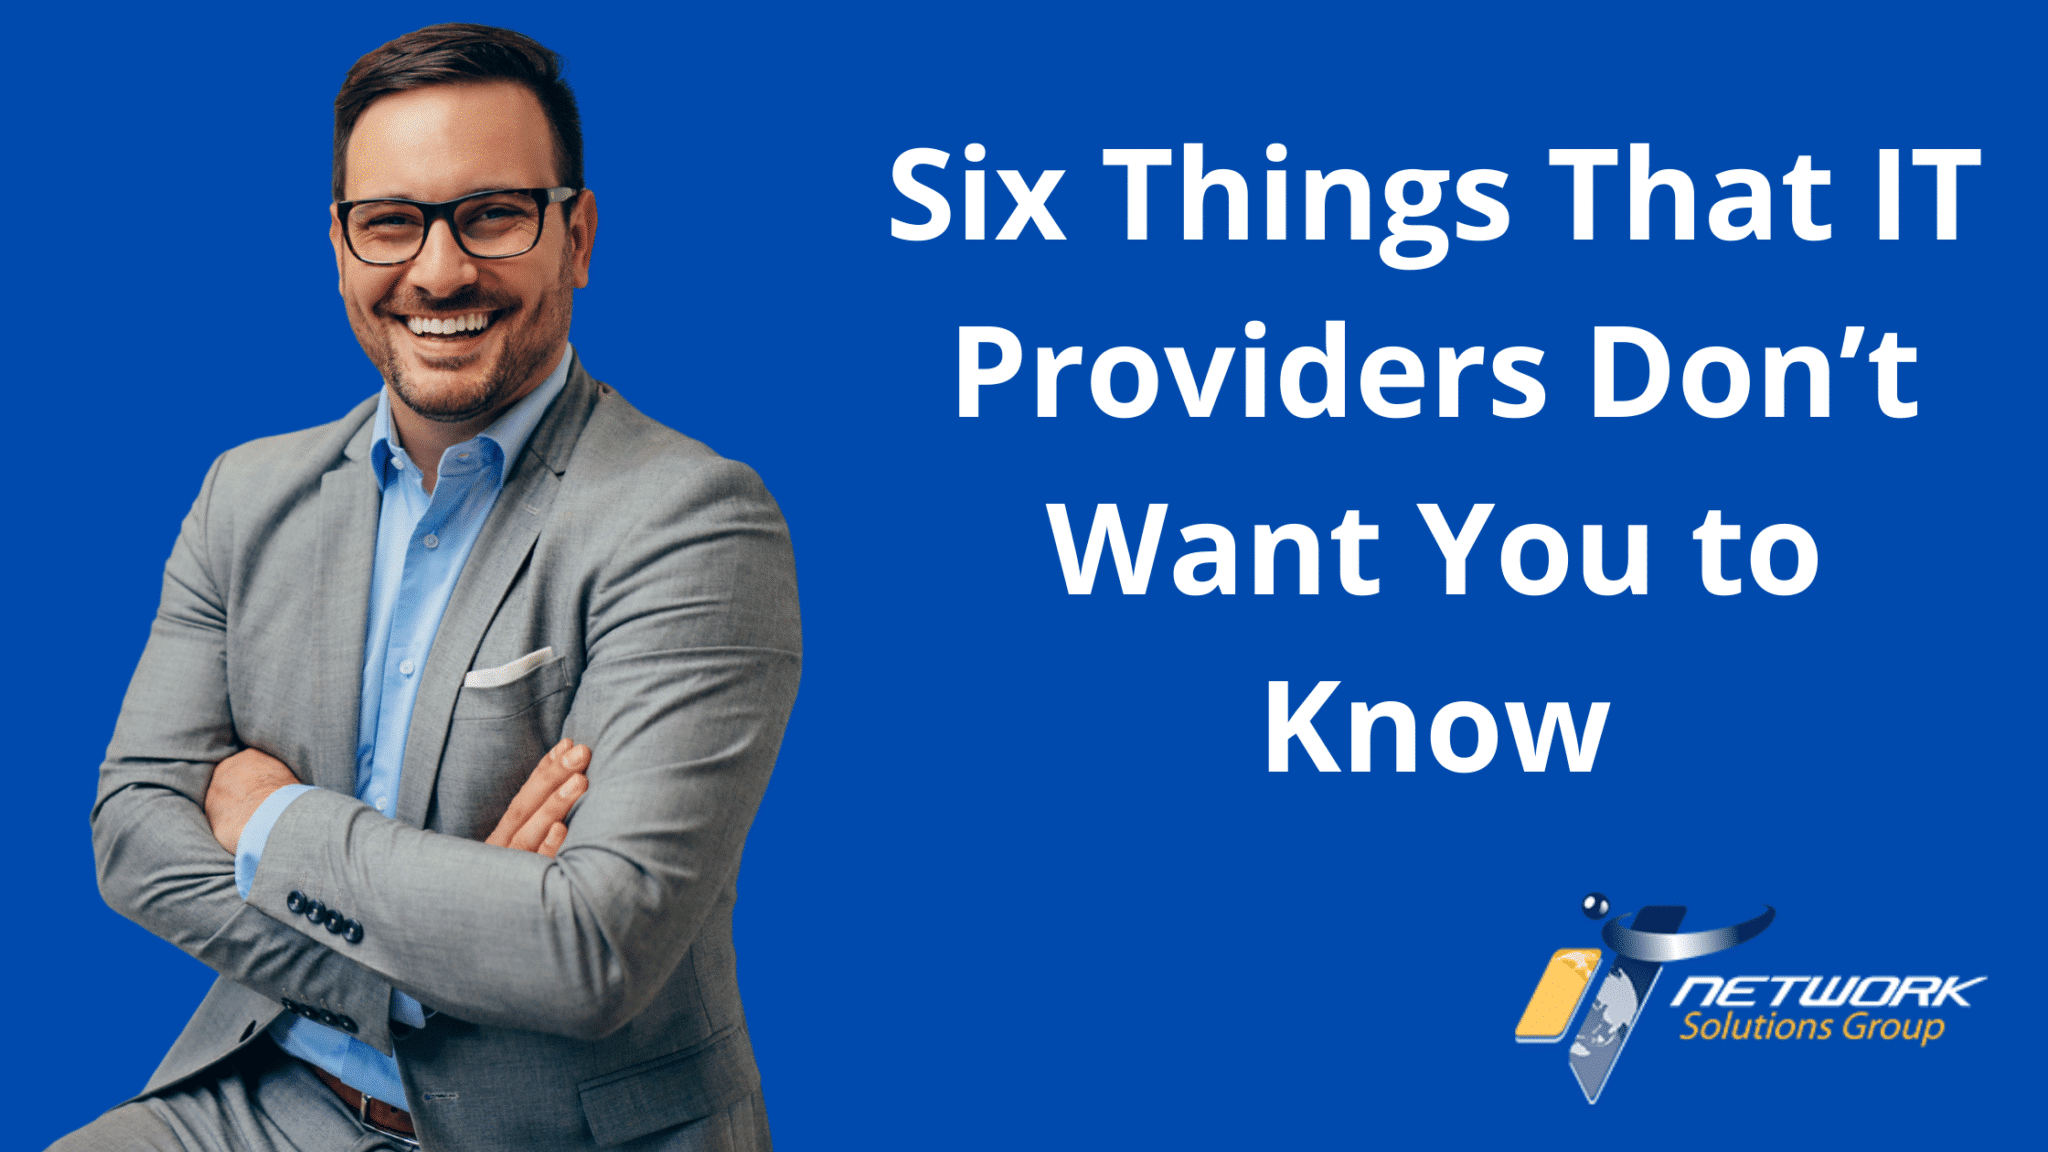 Six Things That IT Providers Don't Want You to Know